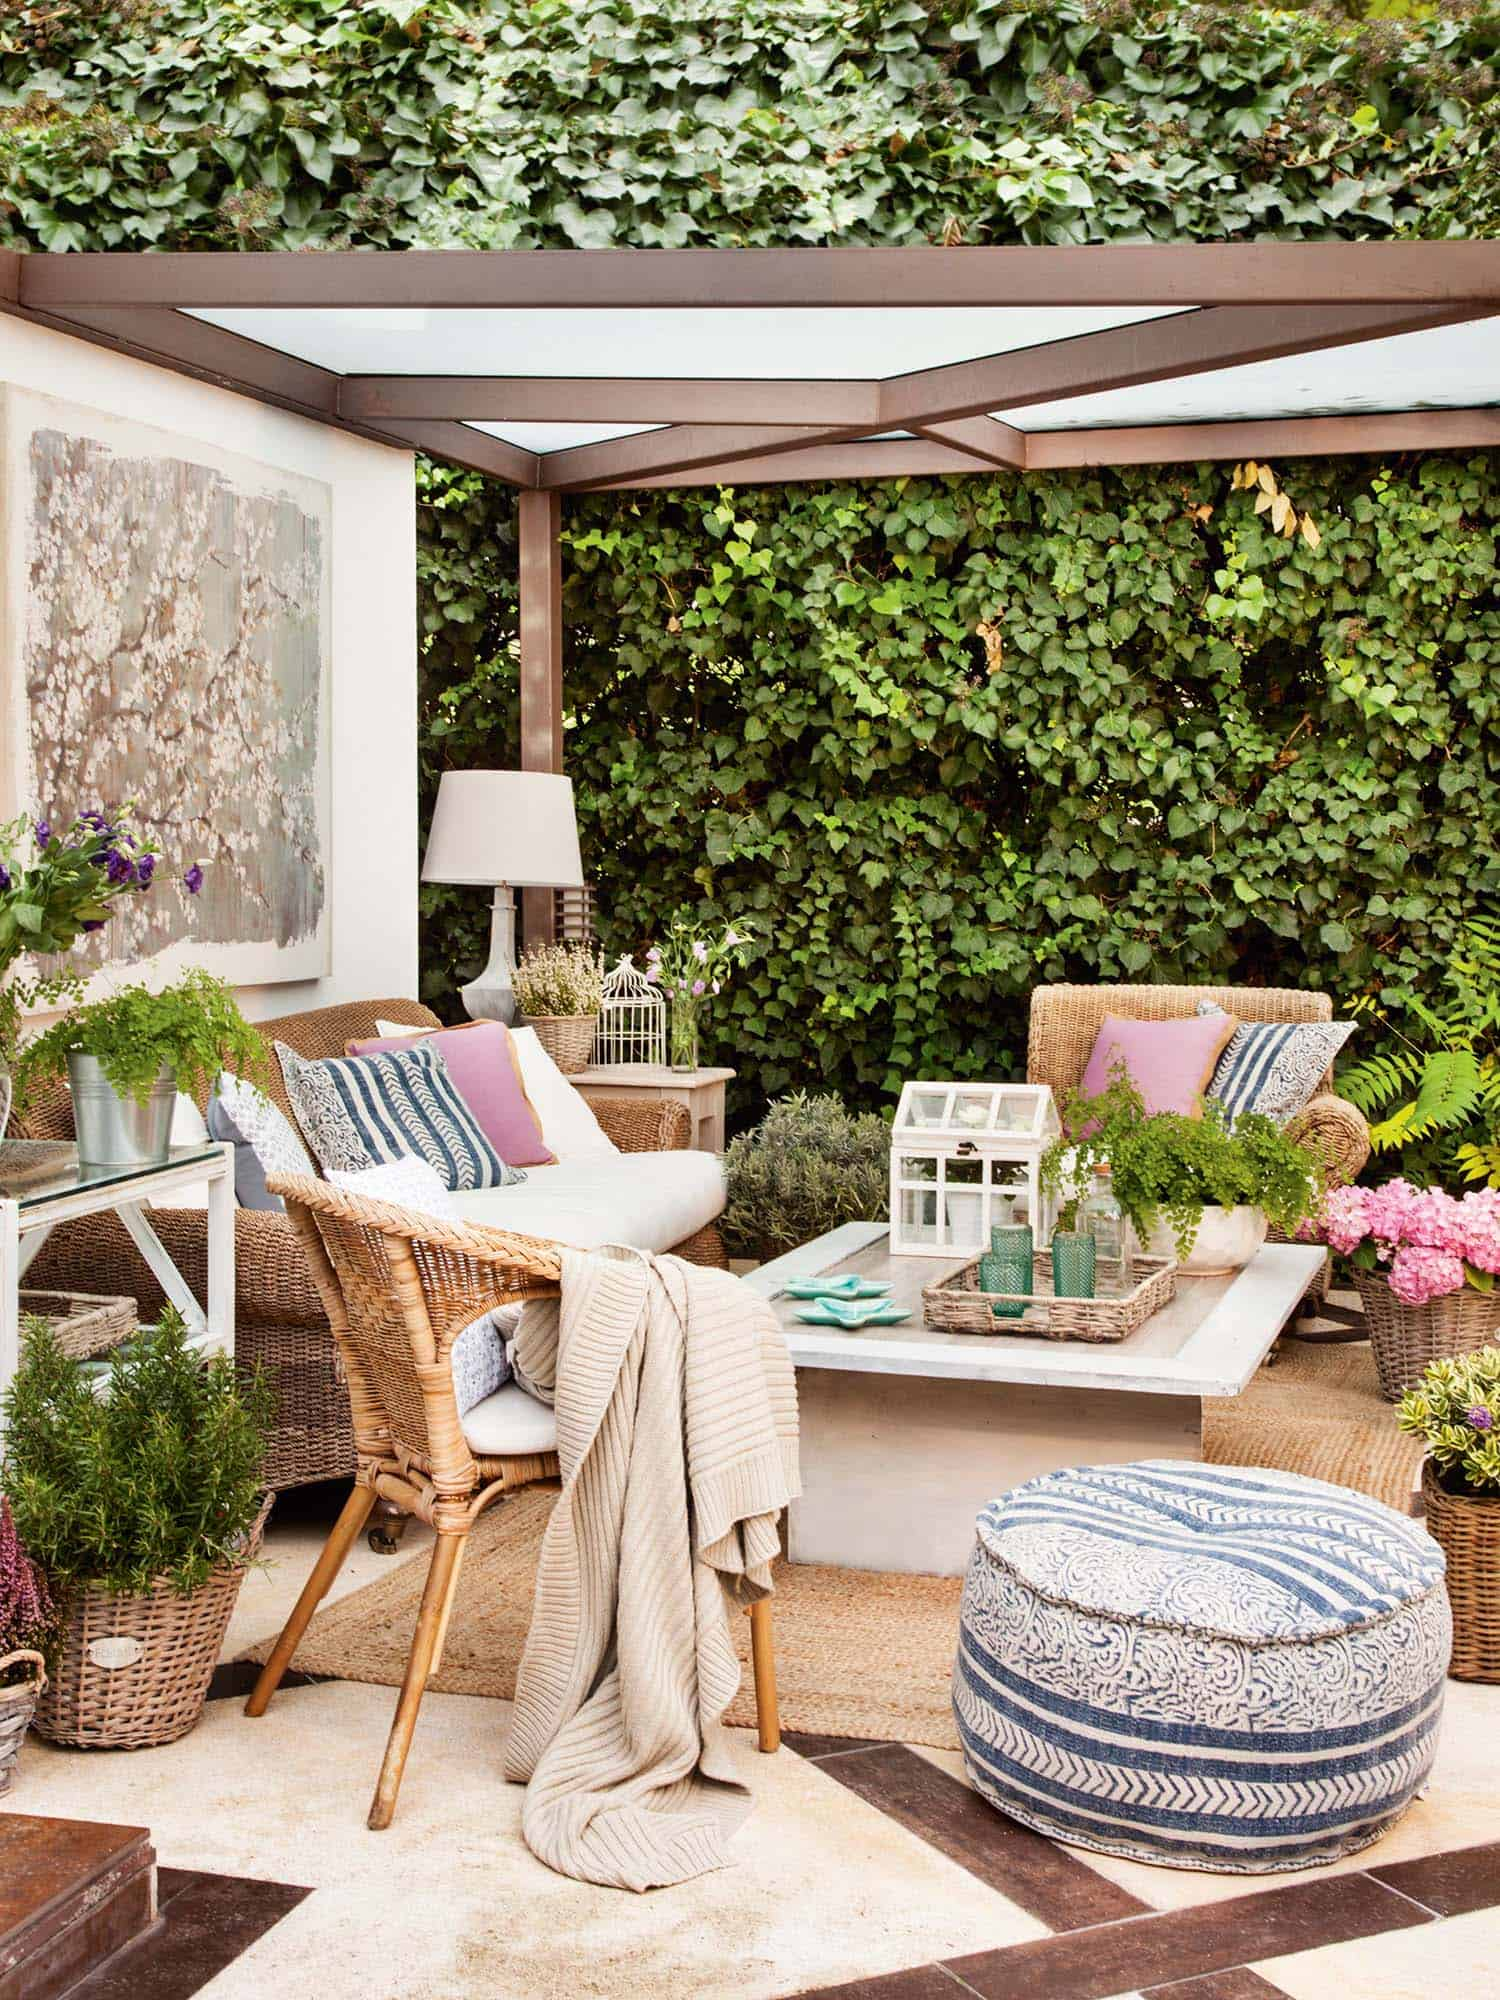 33 Fabulous Ideas For Creating Beautiful Outdoor Living Spaces on Beautiful Outdoor Living Spaces id=12935